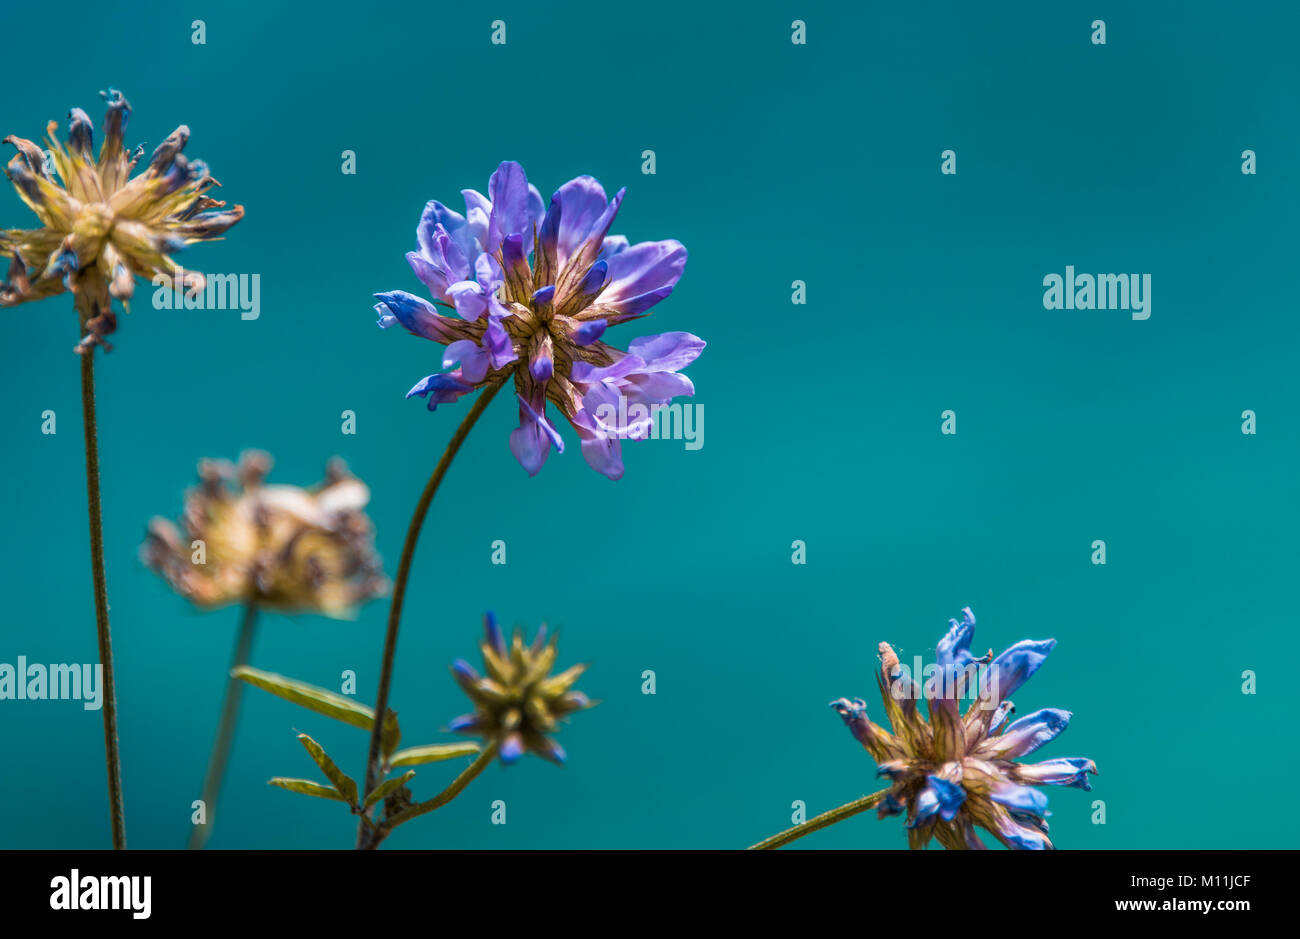 Close up image of a velvet flower on plain turquiose background Stock Photo